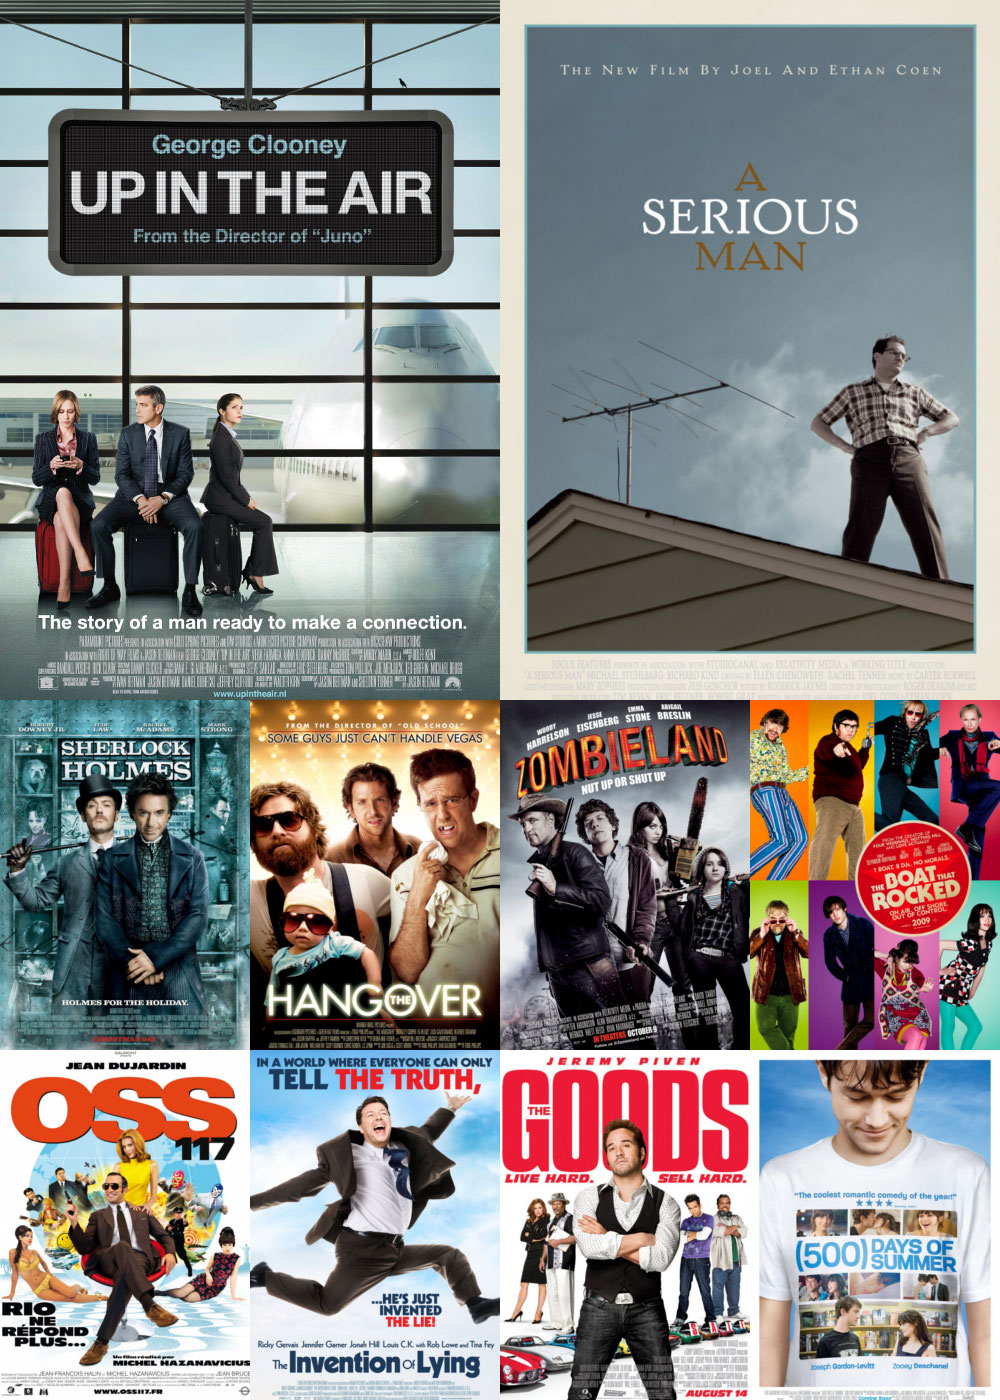 All Comedy Movies In 2009 top 10 comedy movies 2009: kinocomedy — livejournal